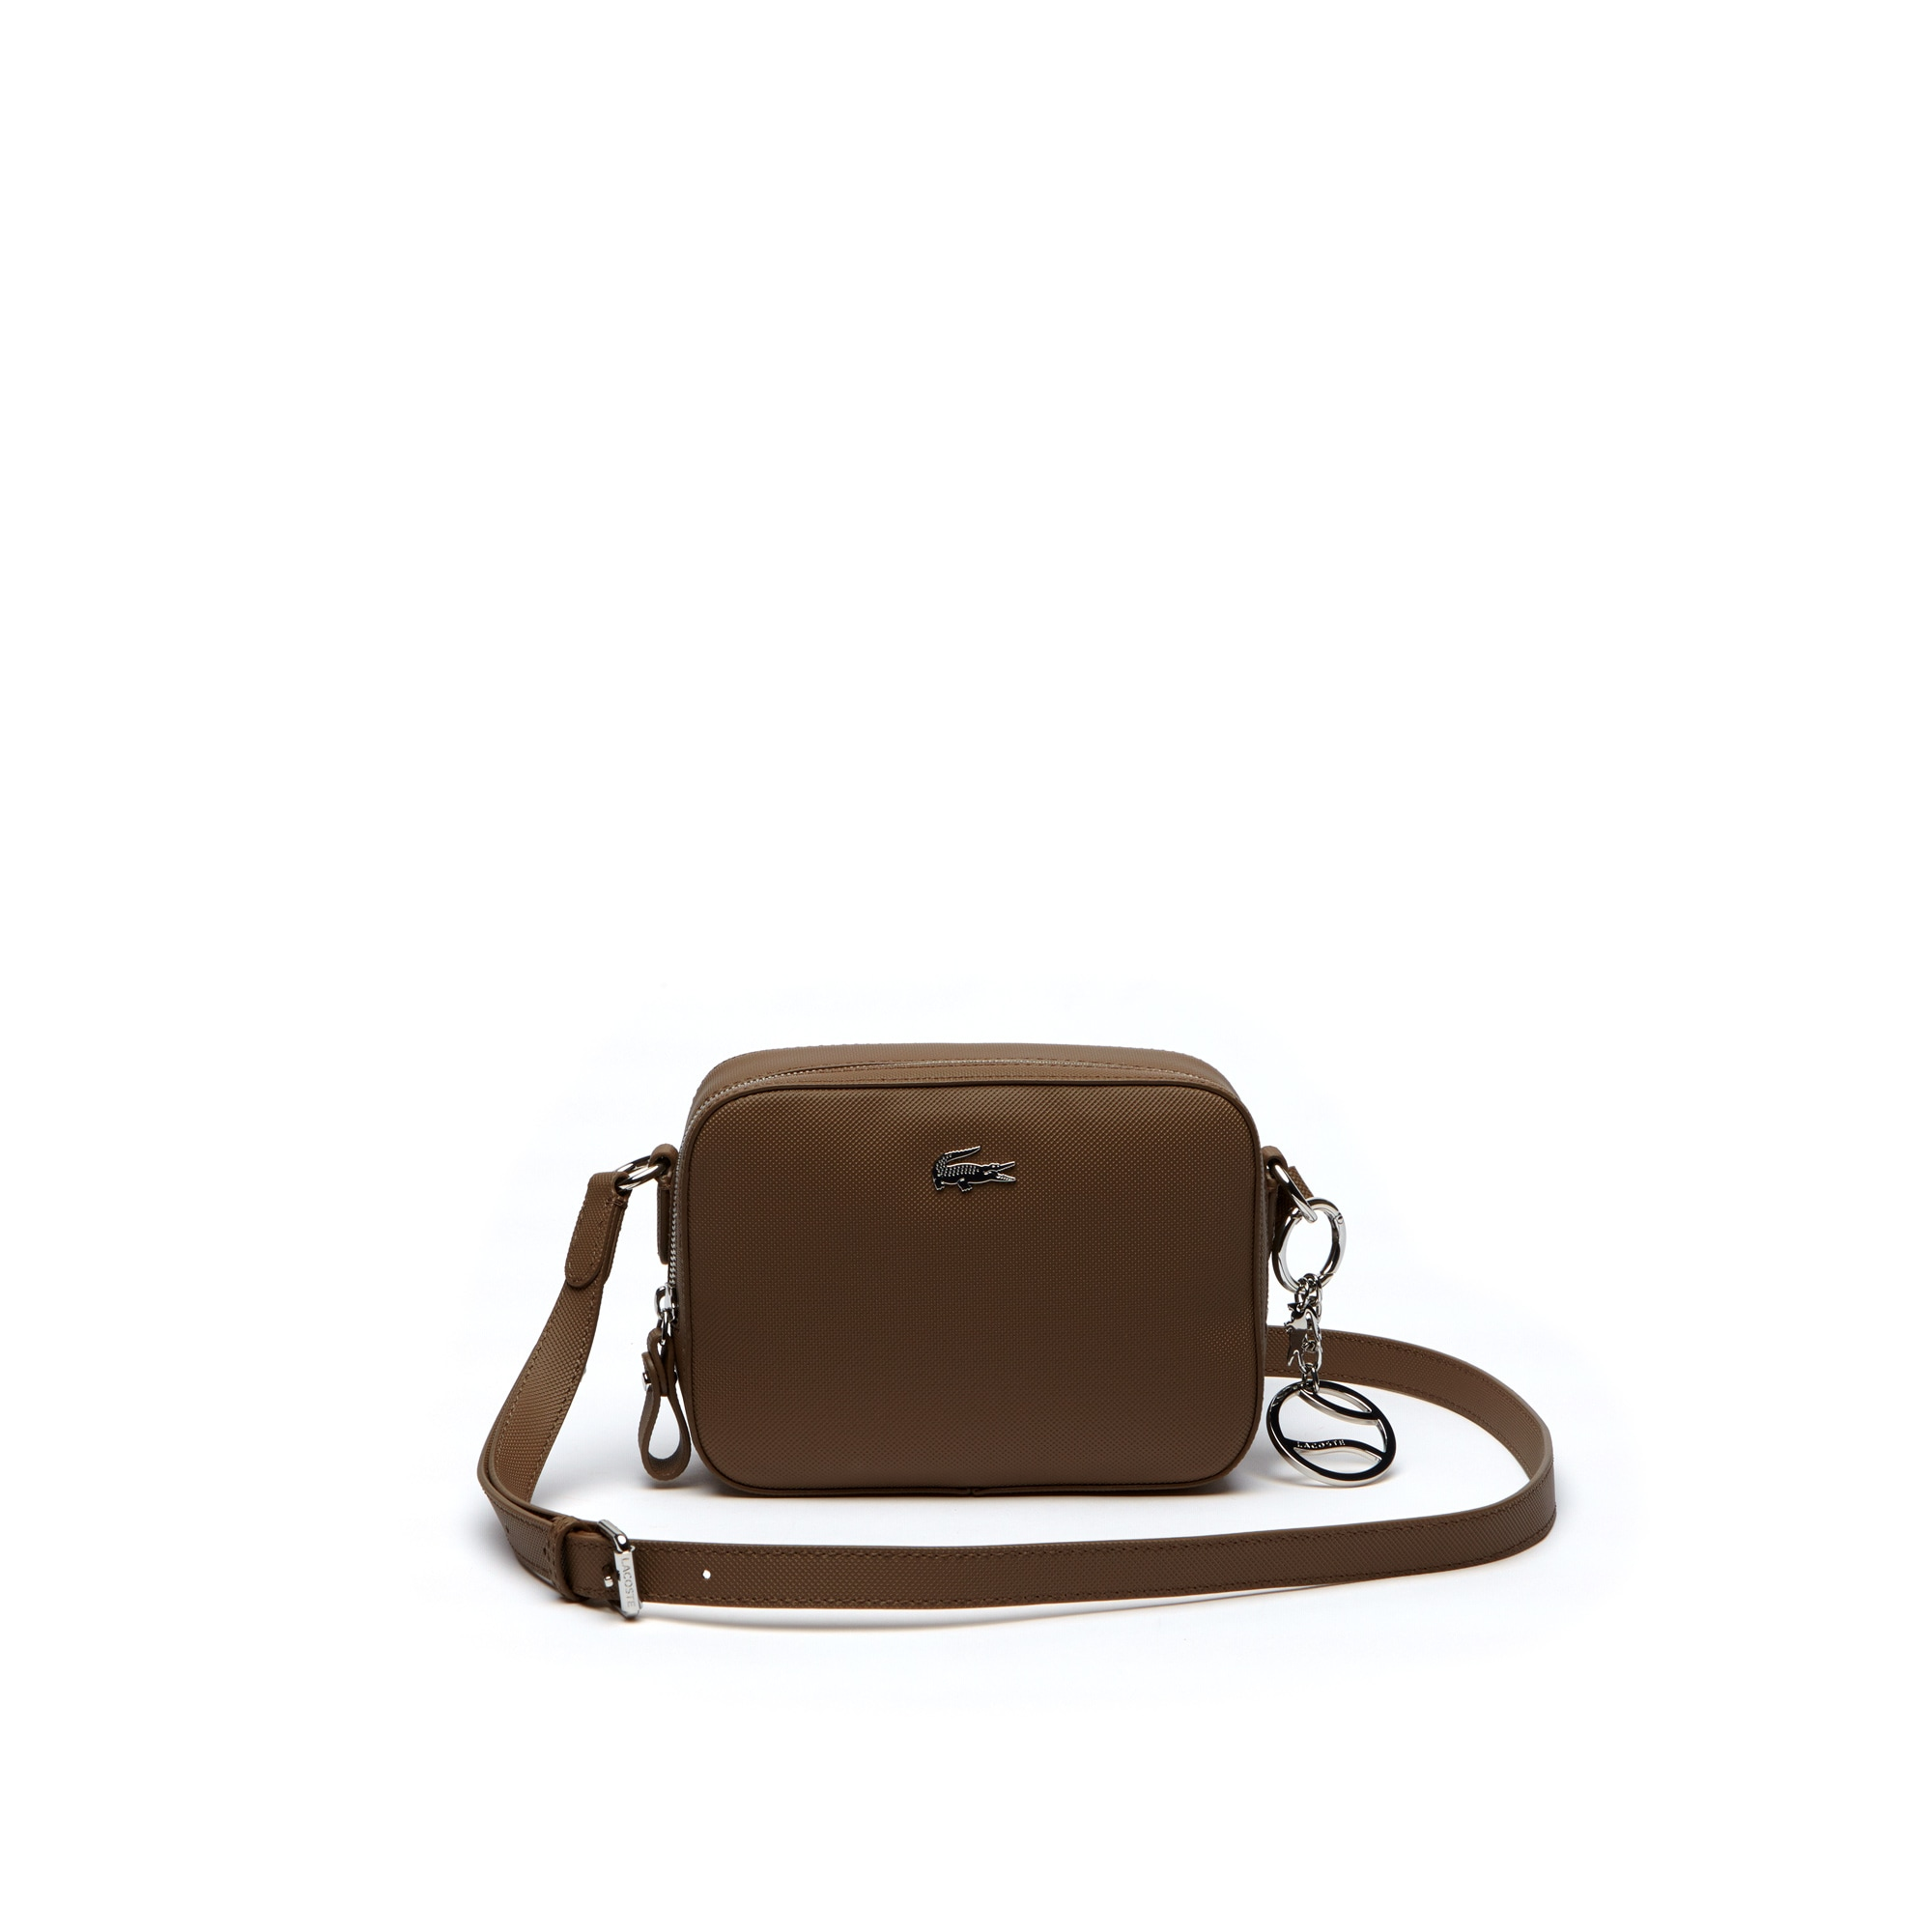 c0ceae2d8922 Women s Daily Classic Coated Piqué Canvas Square Crossover Bag